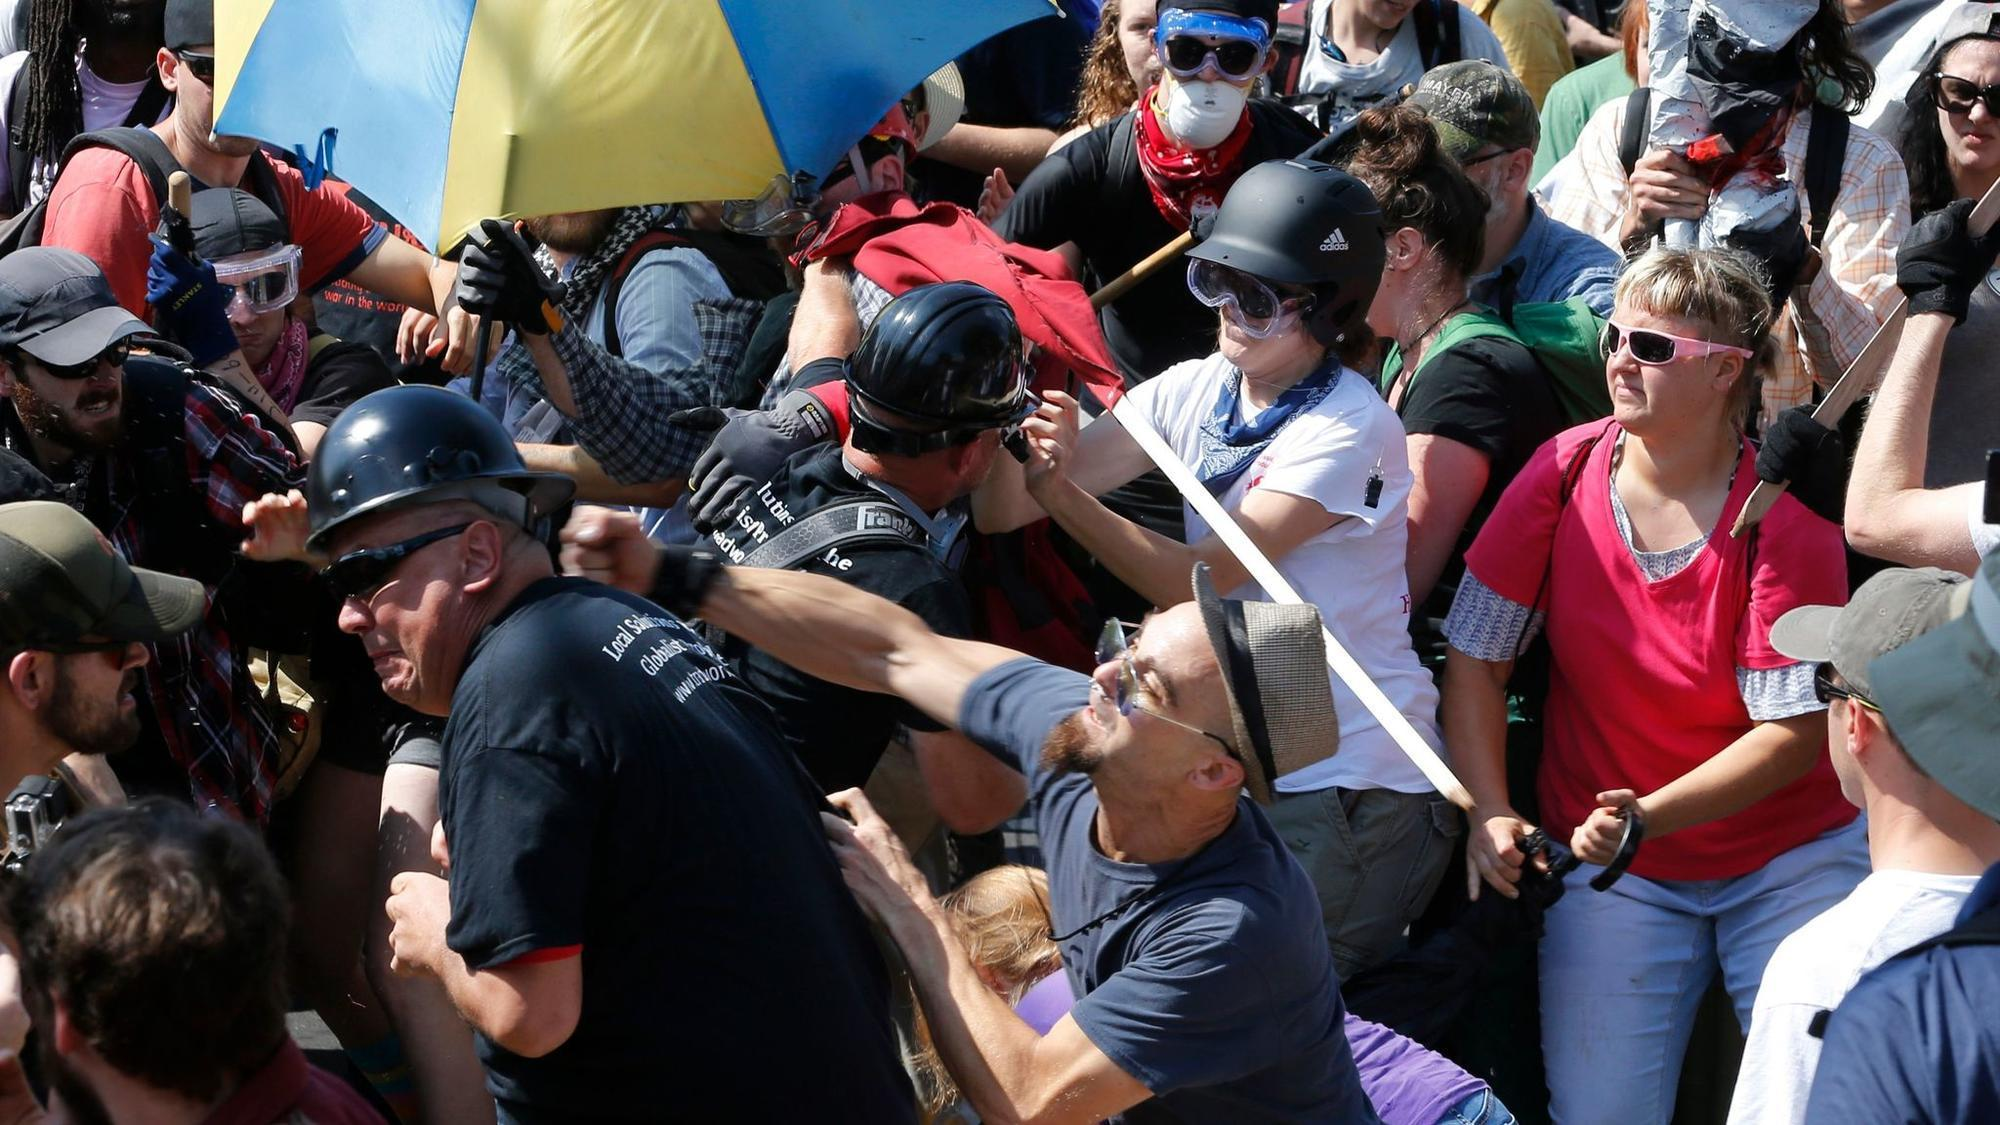 Law enforcement failed at Charlottesville rally, report says